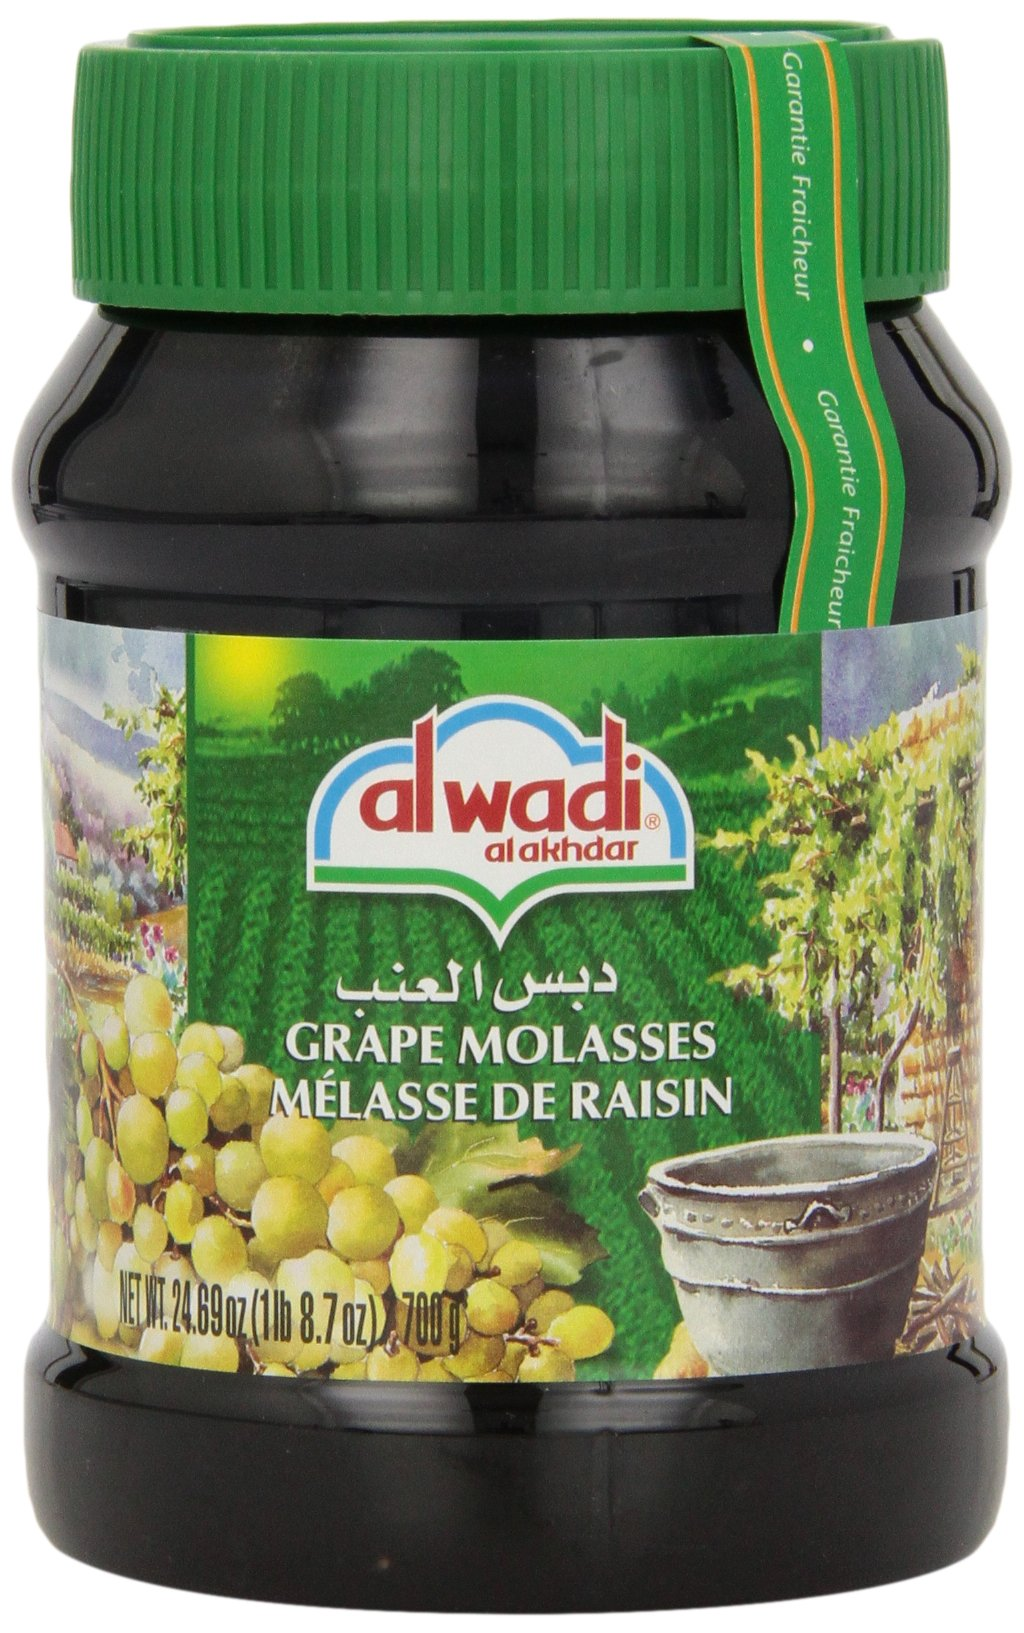 Alwadi Al Akhdar Grape Molasses, 24.69-Ounce Jars (Pack of 3)